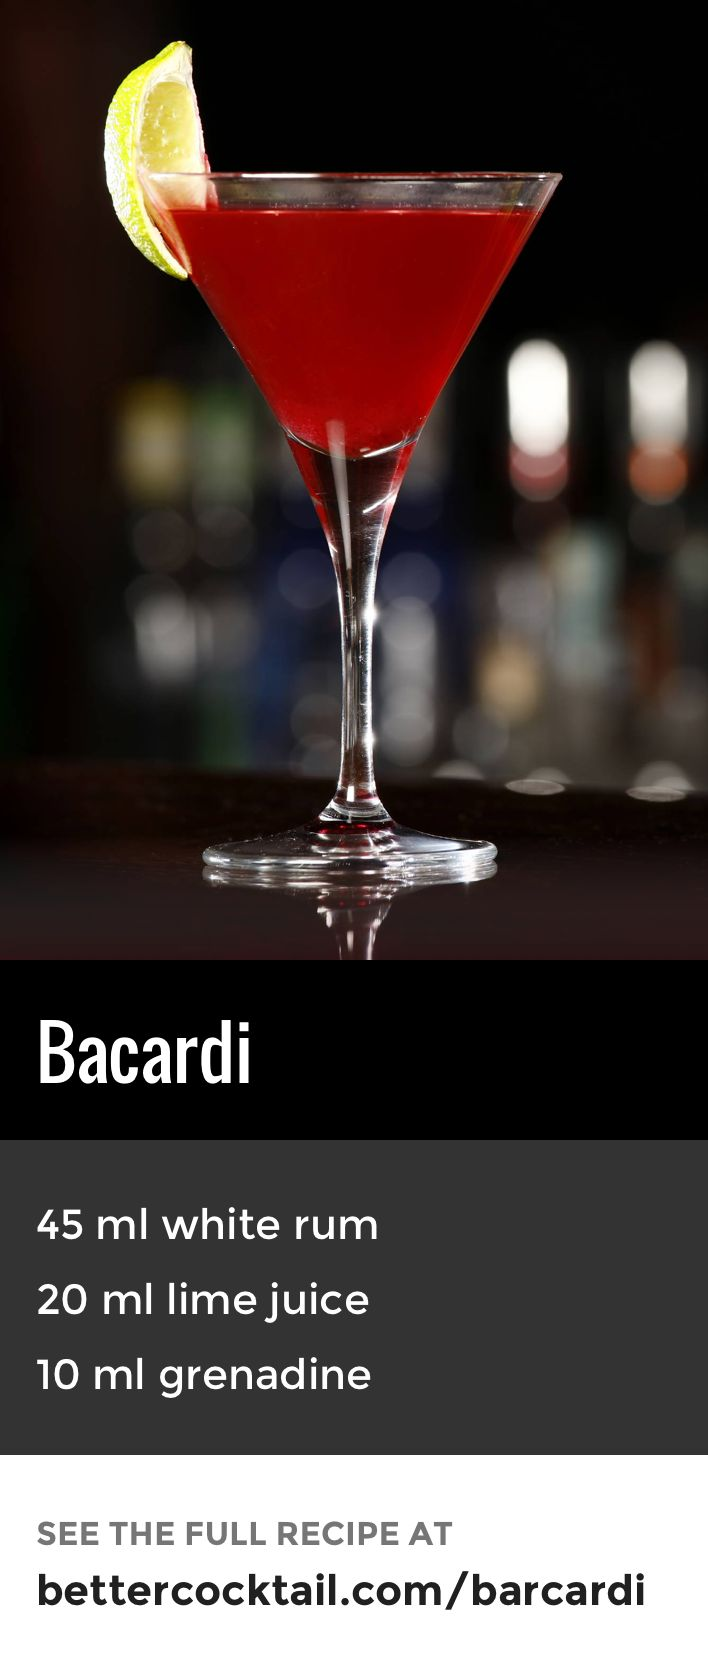 The Bacardi cocktail's primary ingredient is white rum and is usually served before dinner. The drink should be served in a cocktail glass and can be garnished with a slice lime. #cocktailrecipes